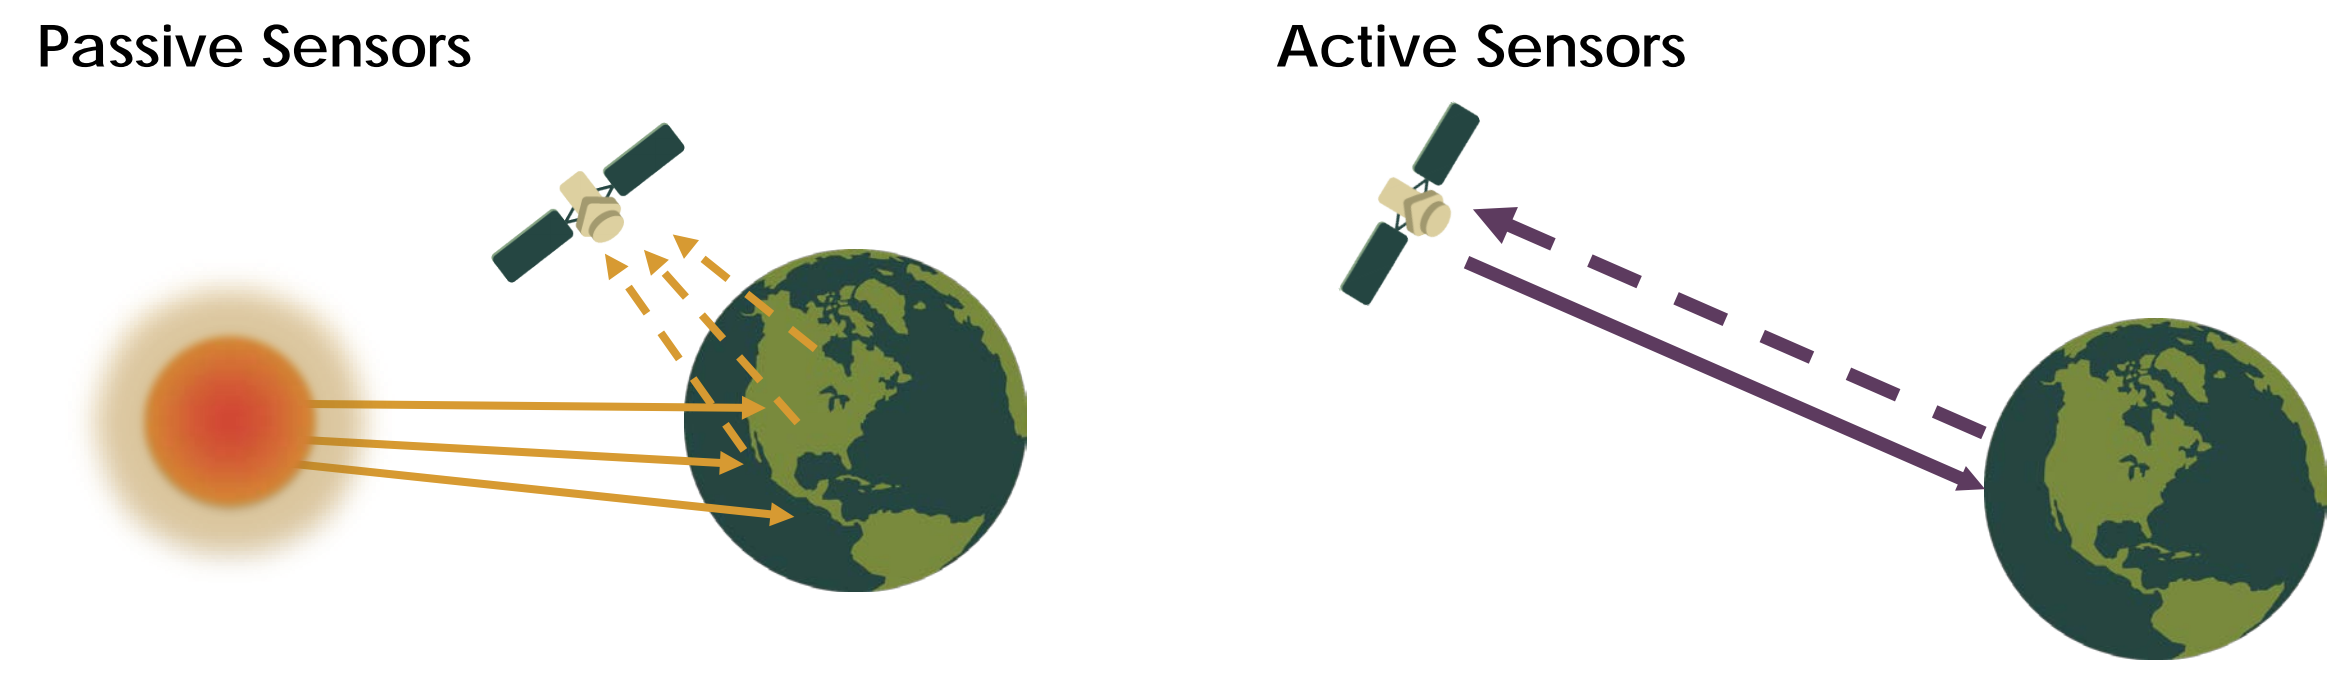 Diagram of a passive sensor versus an active sensor.